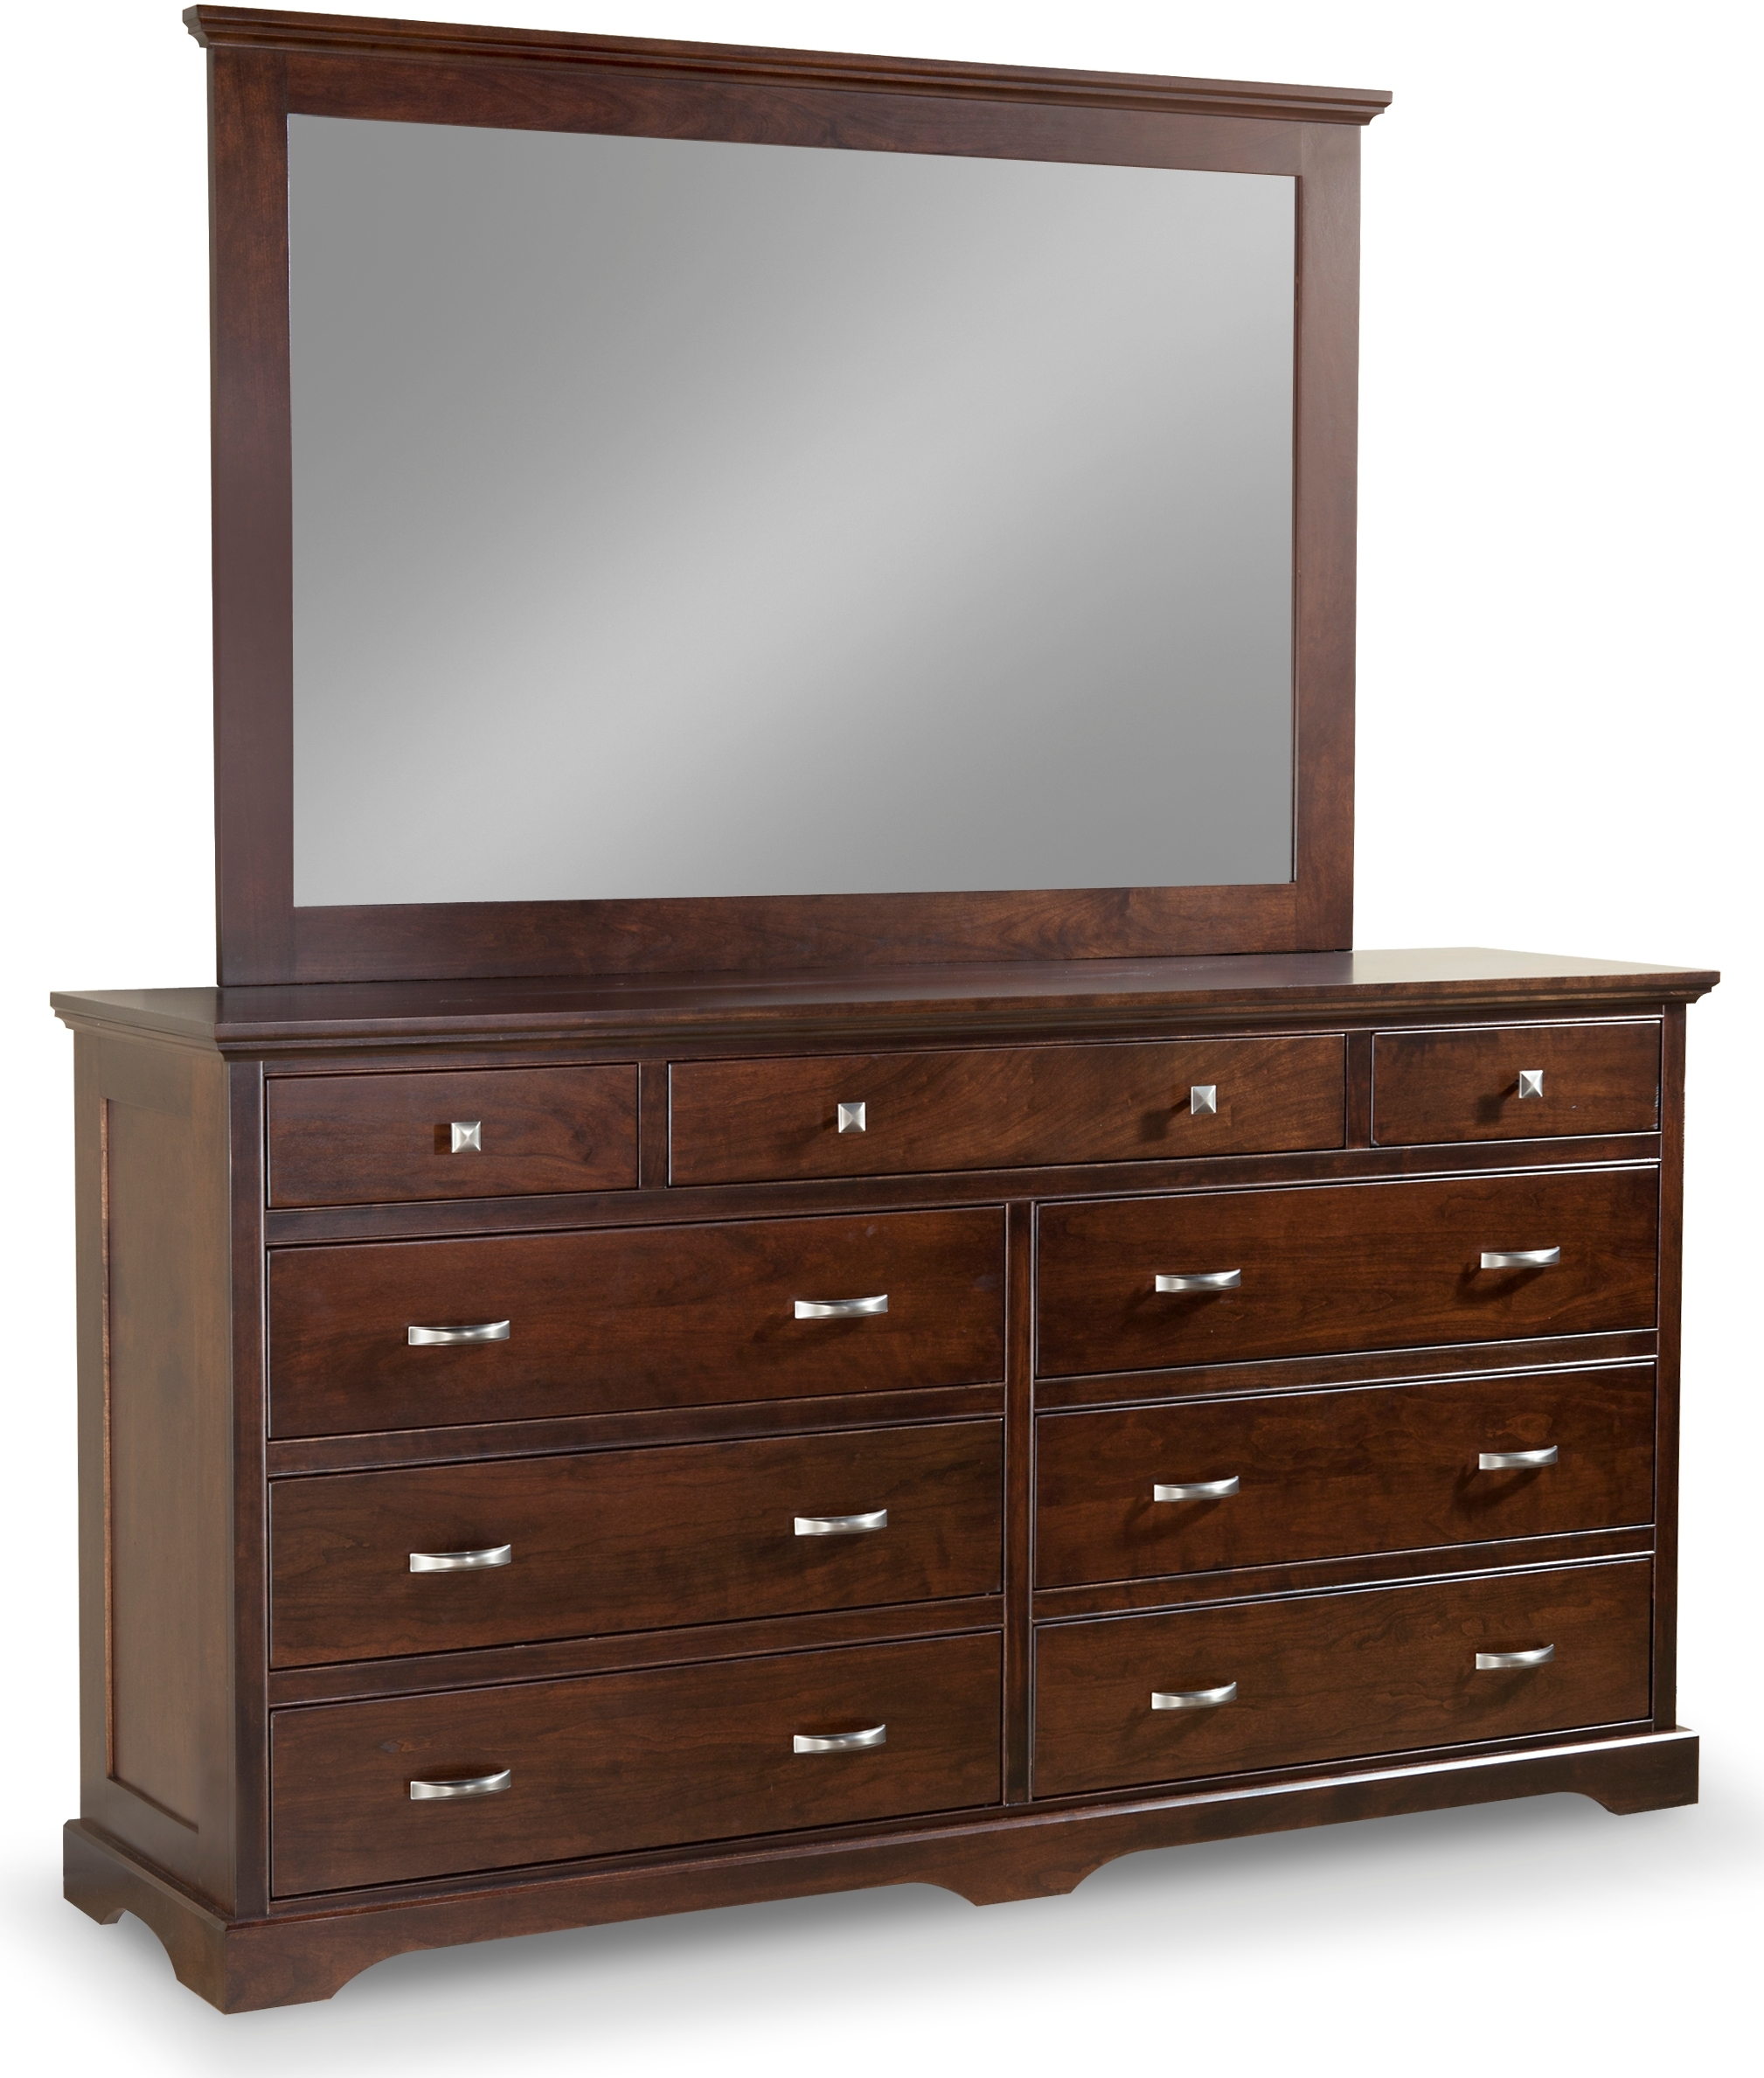 Elegance 9 Drawer Double Dresser With Tall Wide Mirror By Daniel S Amish Collection Nis698358599 Willis Furniture Mattress